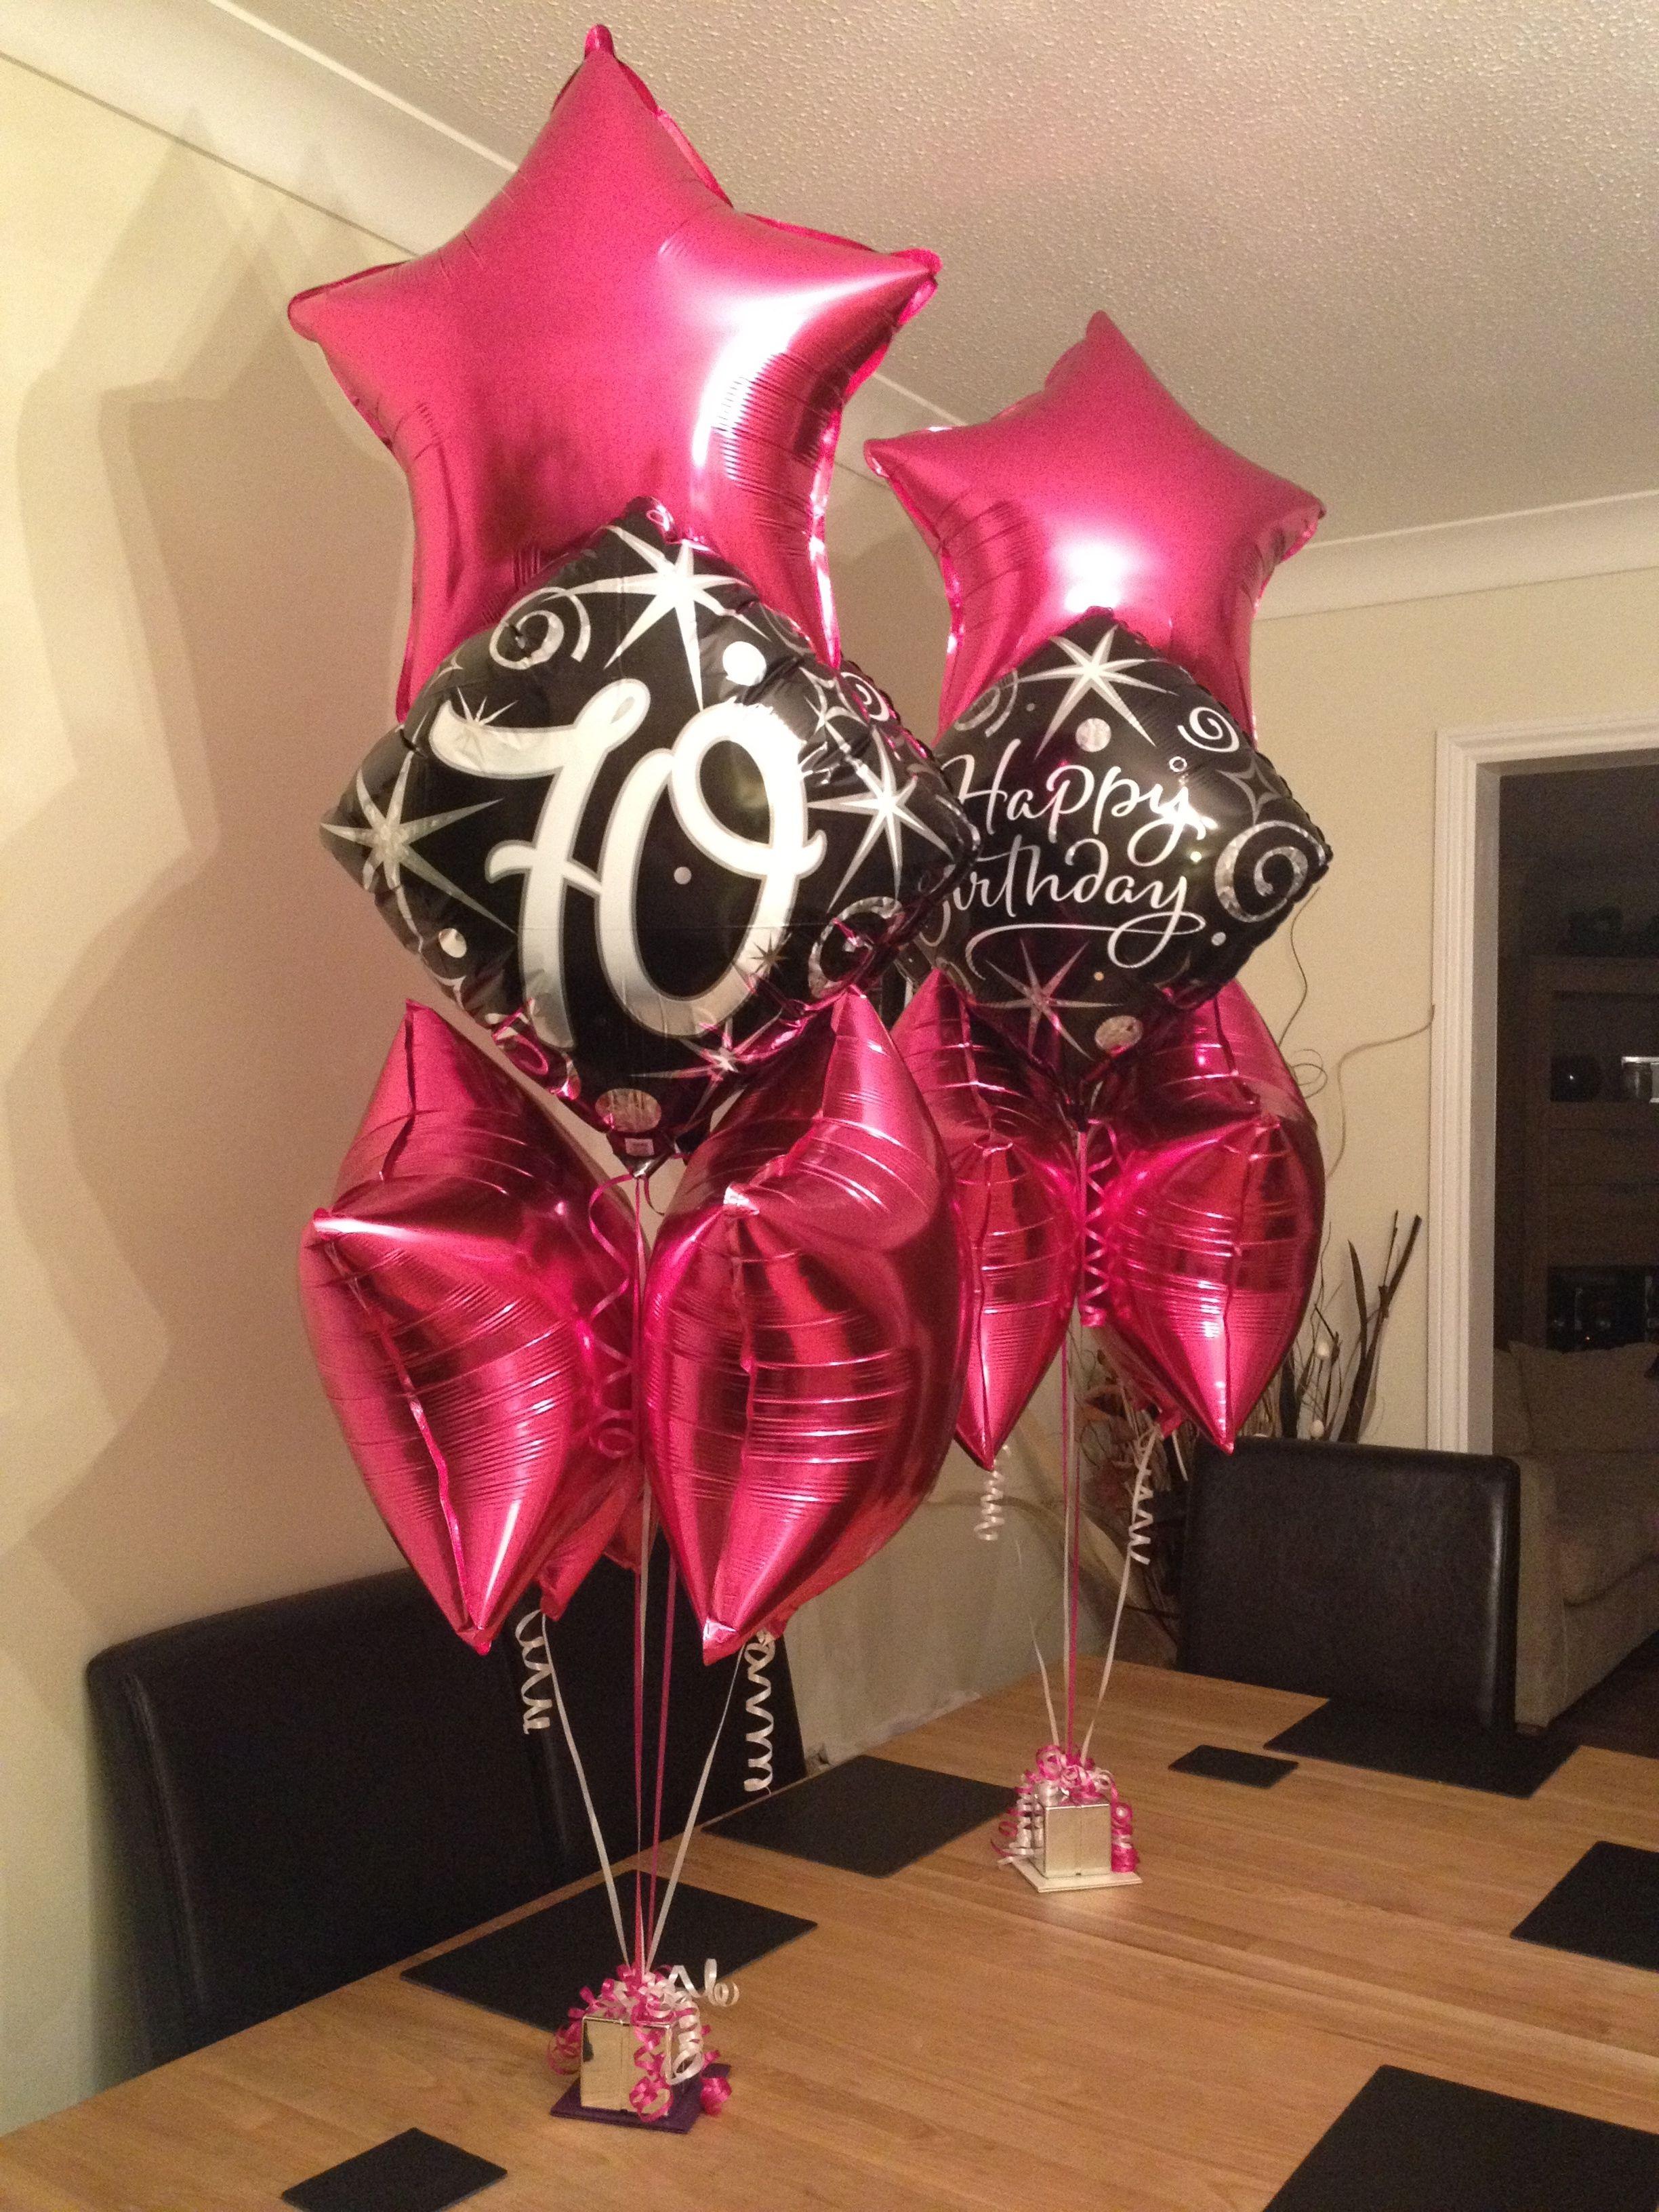 Happy Birthday Balloon Bouquets 70th From Eventsandpartyscouk Look Amazing Using Pink Magenta Stars And Black Silver Swirls Age